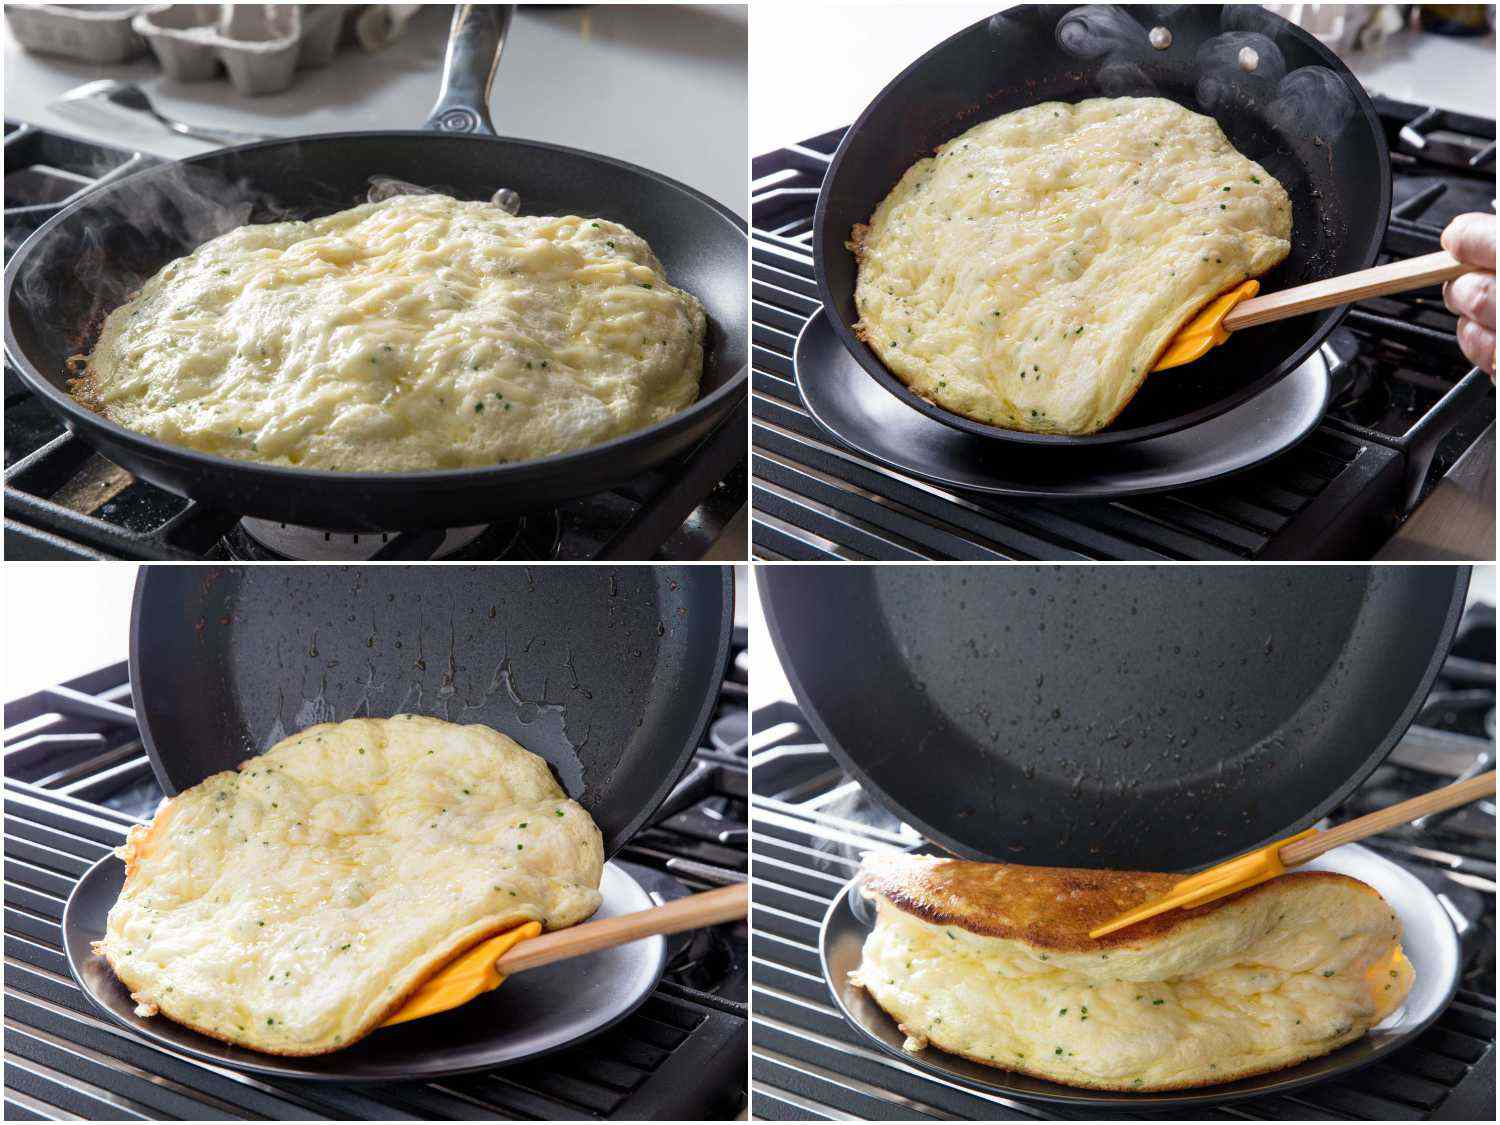 Photo collage showing fully cooked soufflé omelette and the process or sliding it out of the skillet onto a serving plate.